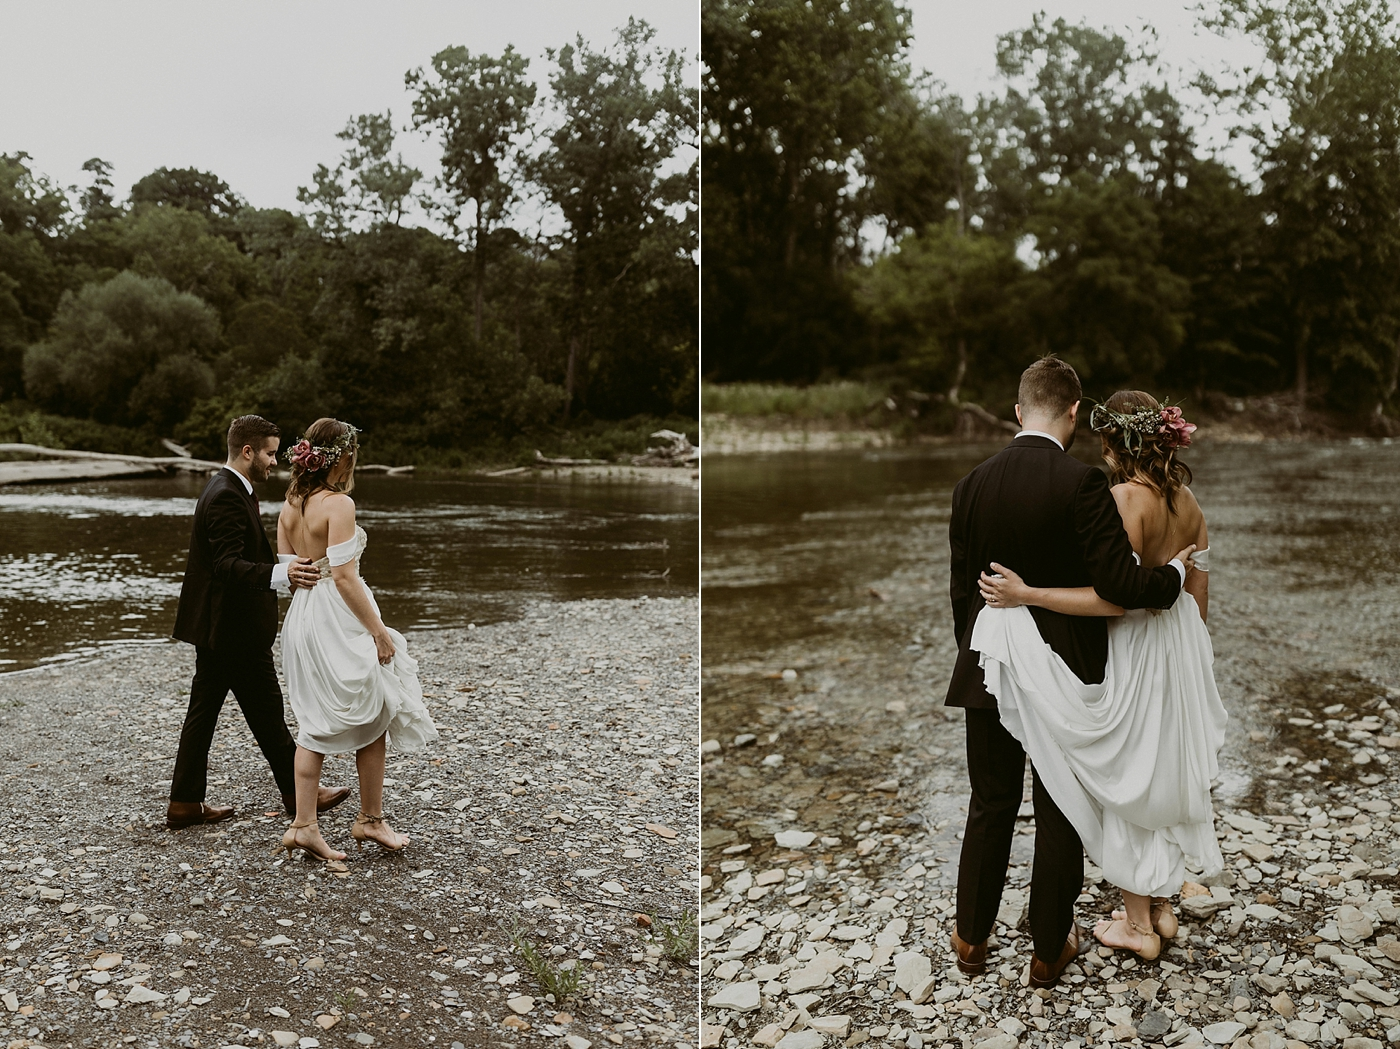 Woodland-Theater-Wedding-Molly+Ryan_MJPHOTO-212.jpg